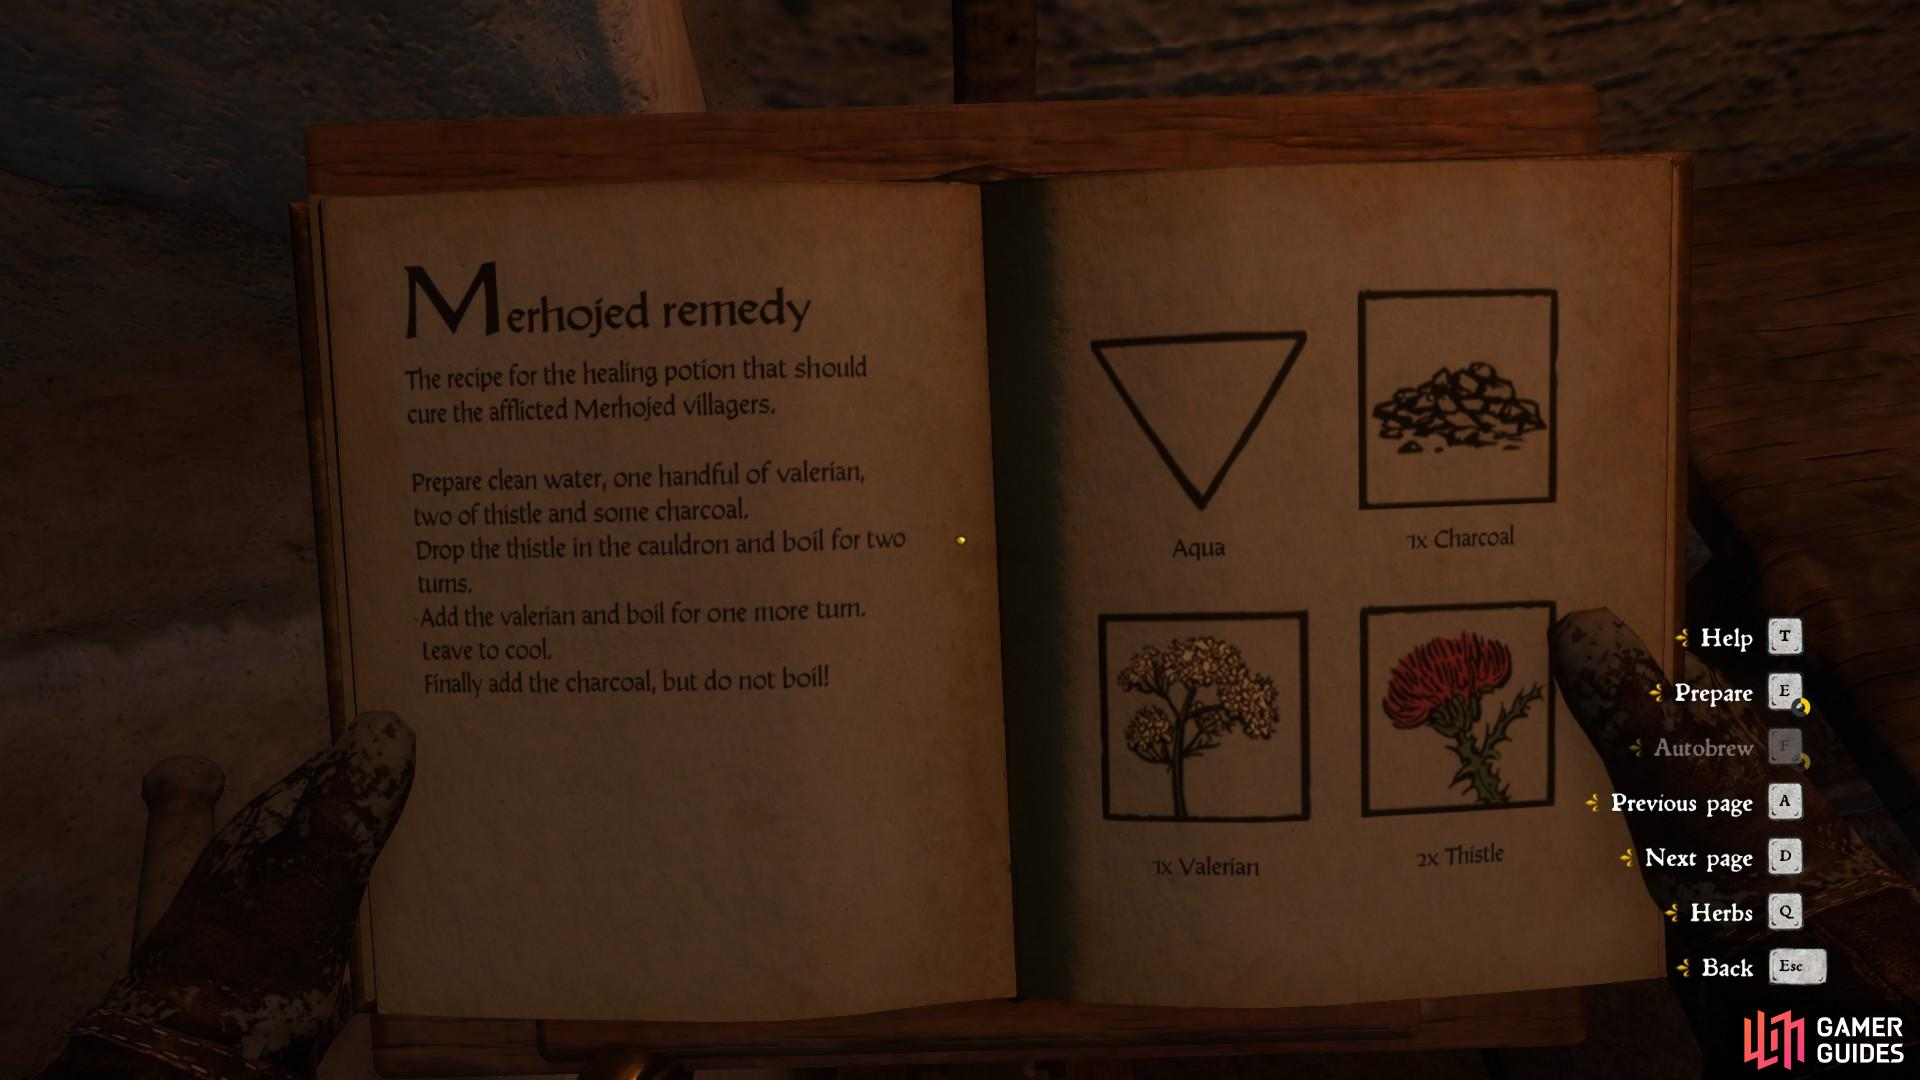 The instructions for the recipe are contained within the book when using the alchemy equipment. Follow them carefully and be sure not to overlook any details.